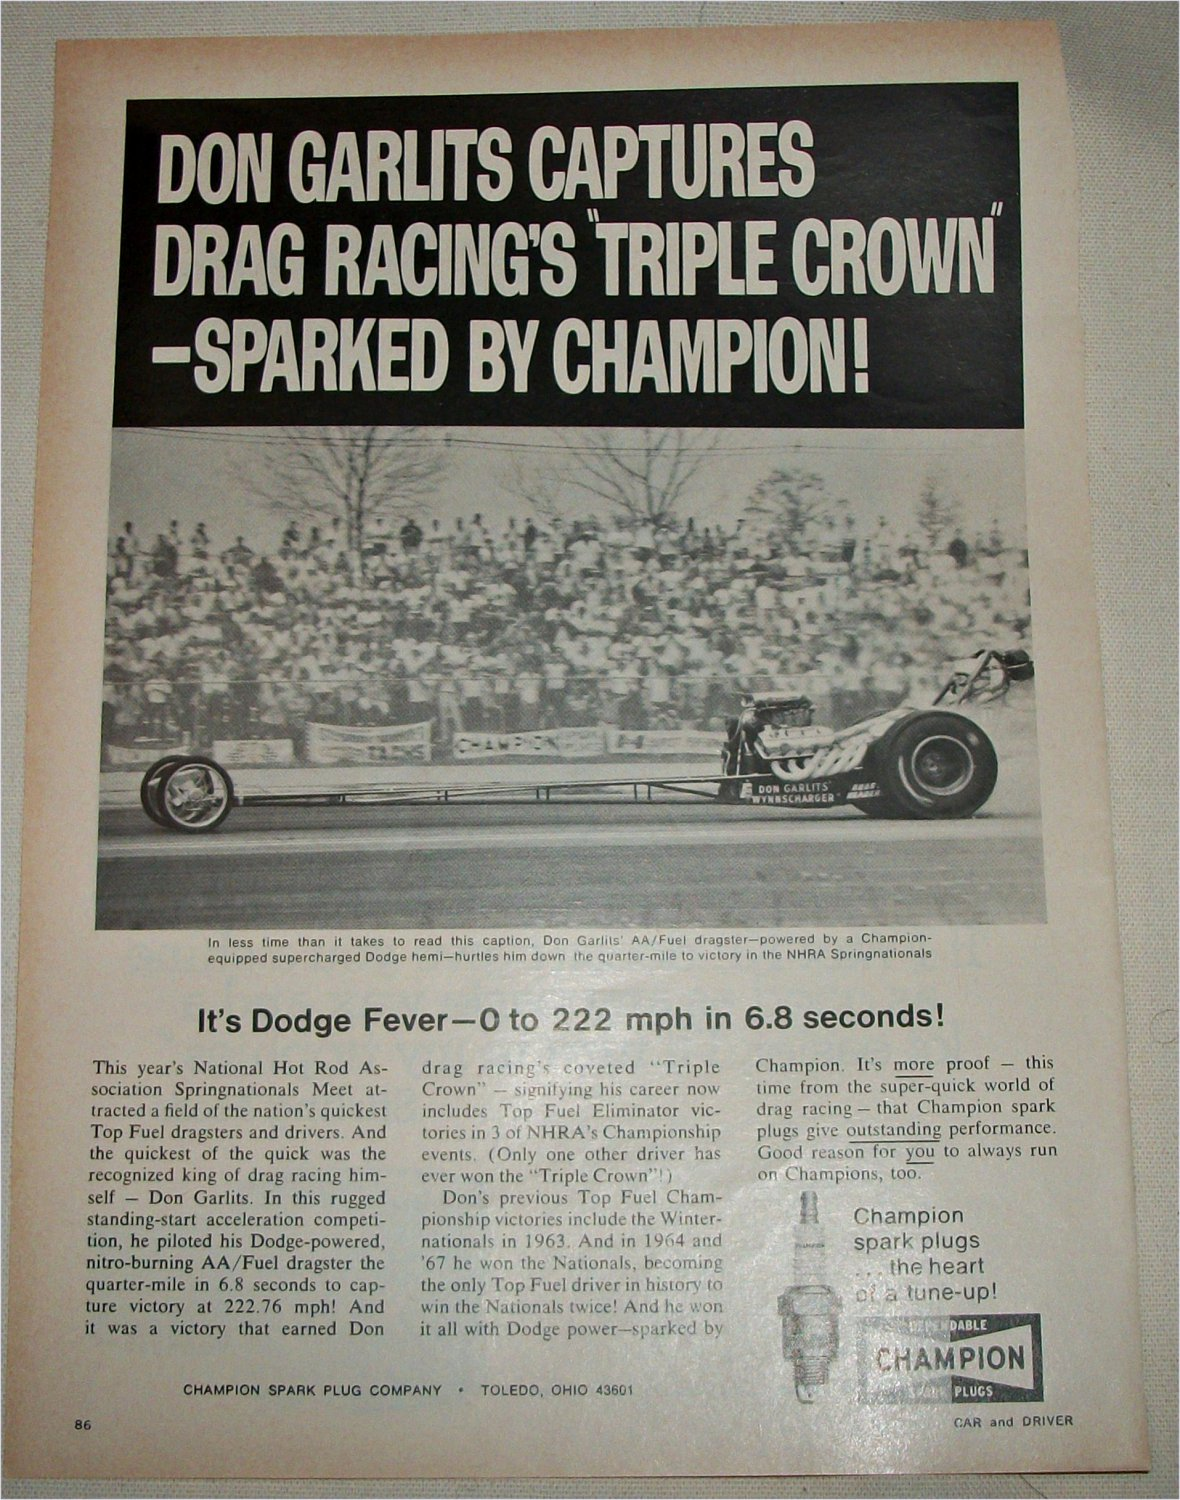 1968 Champion Spark Plugs ad featuring Don Garlits